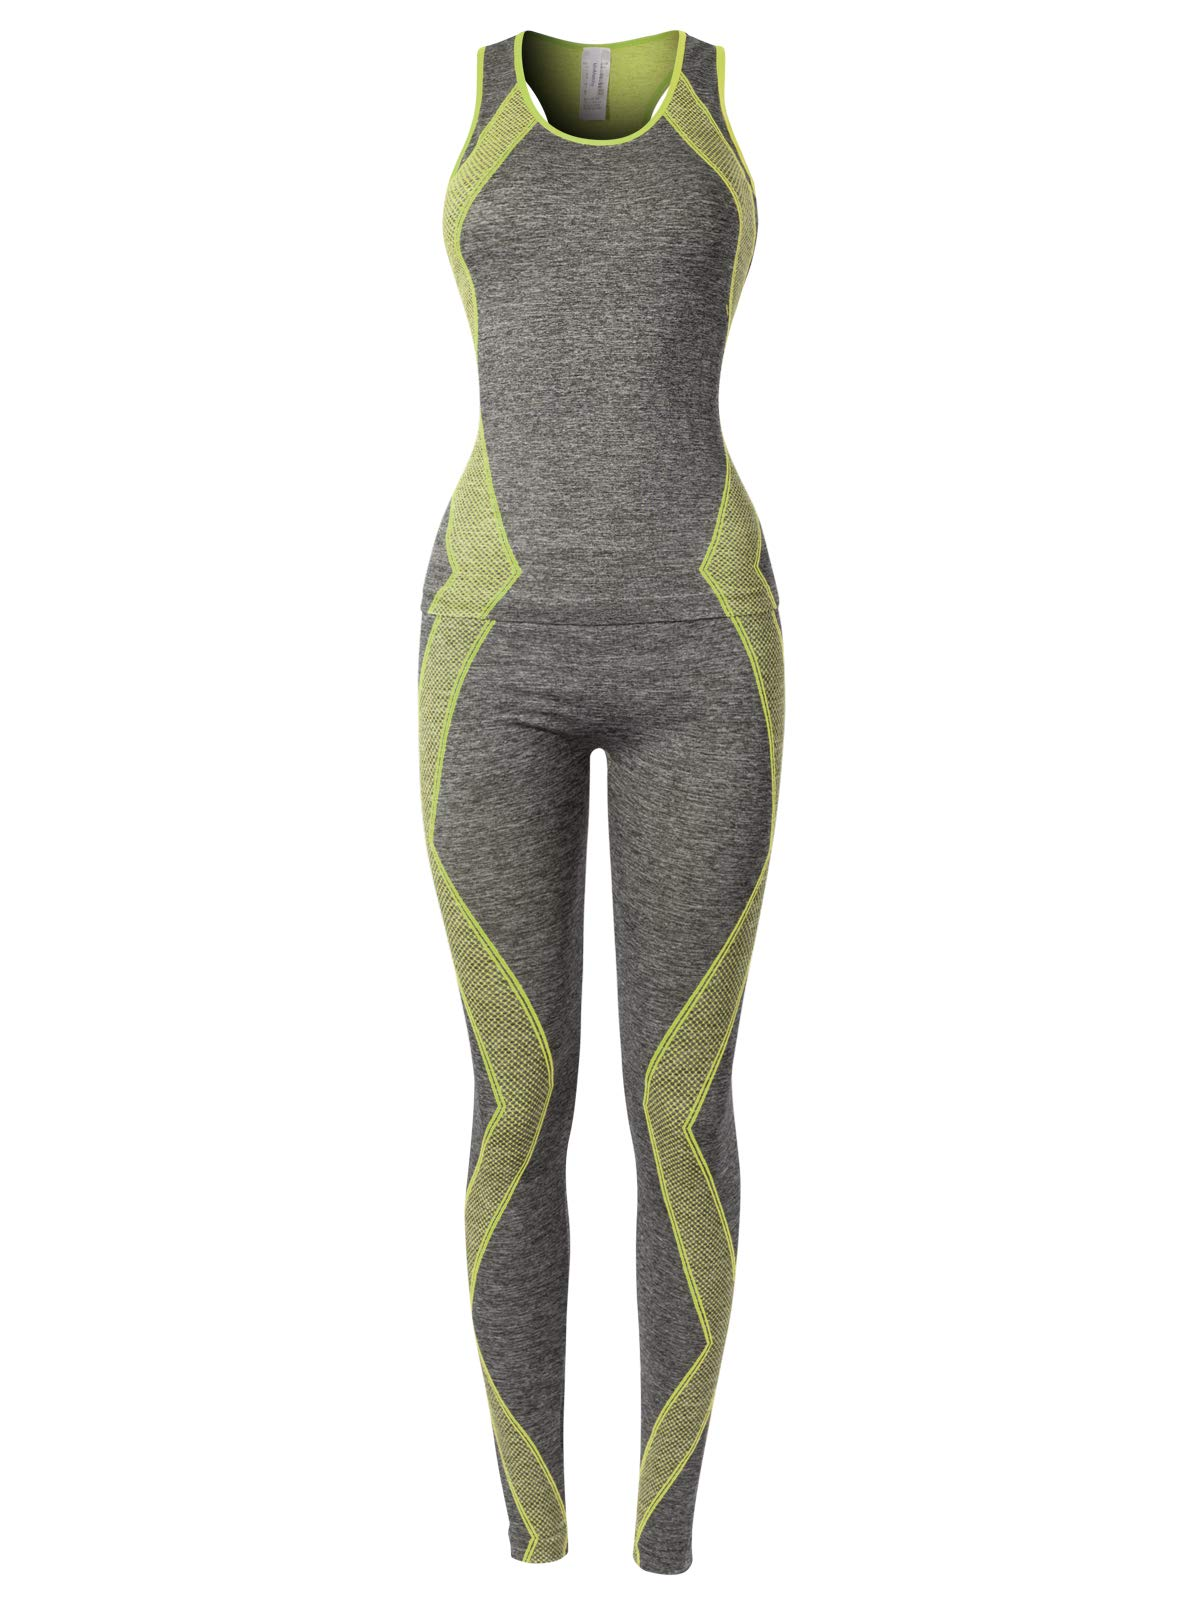 MixMatchy Women's Sports Gym Yoga Workout Activewear Sets Top & Leggings Set Grey/Lime Green ONE by MixMatchy